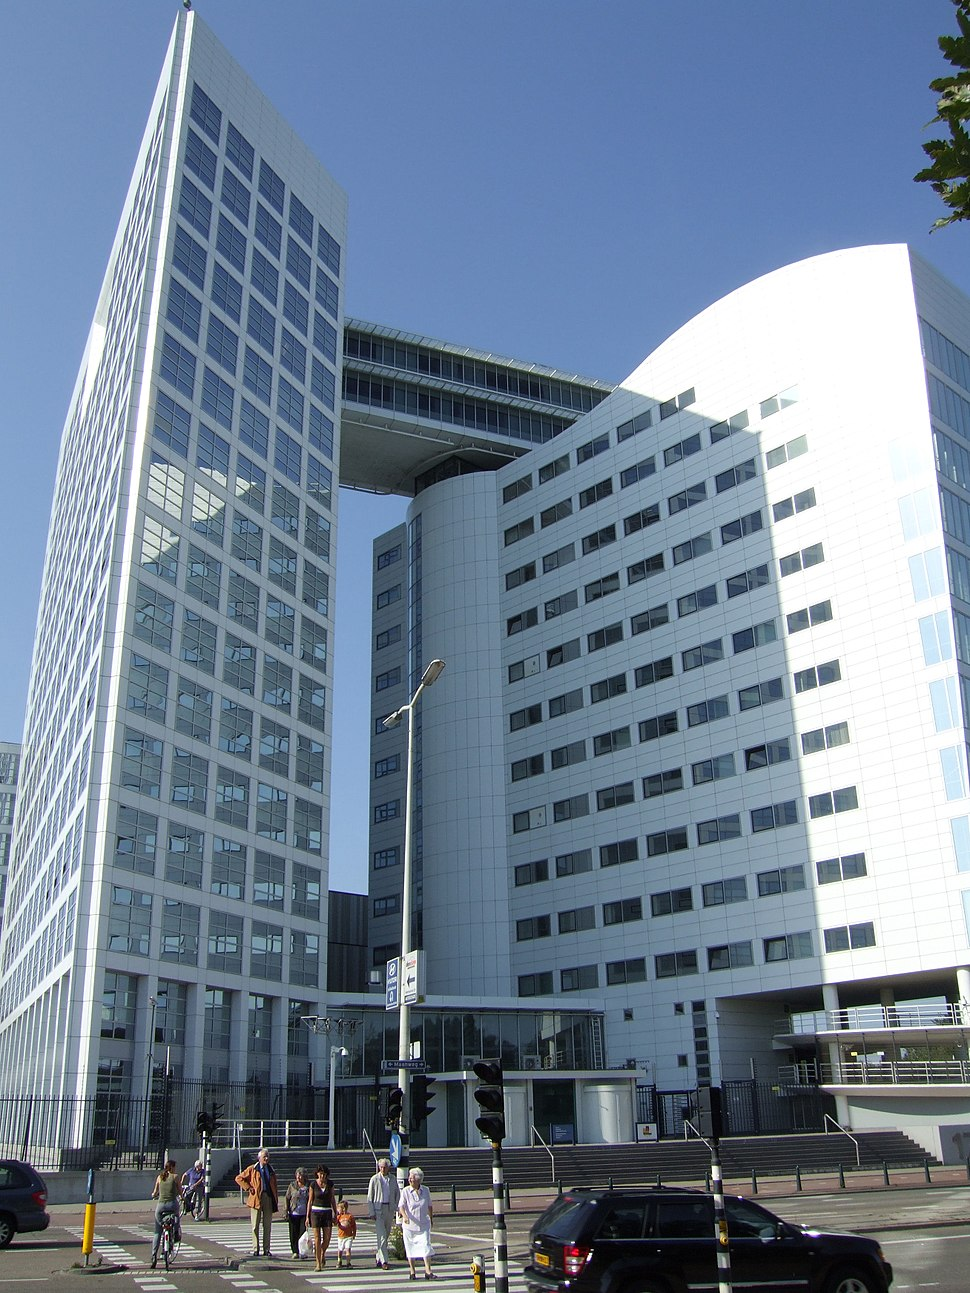 Building of the International Criminal Court in The Hague